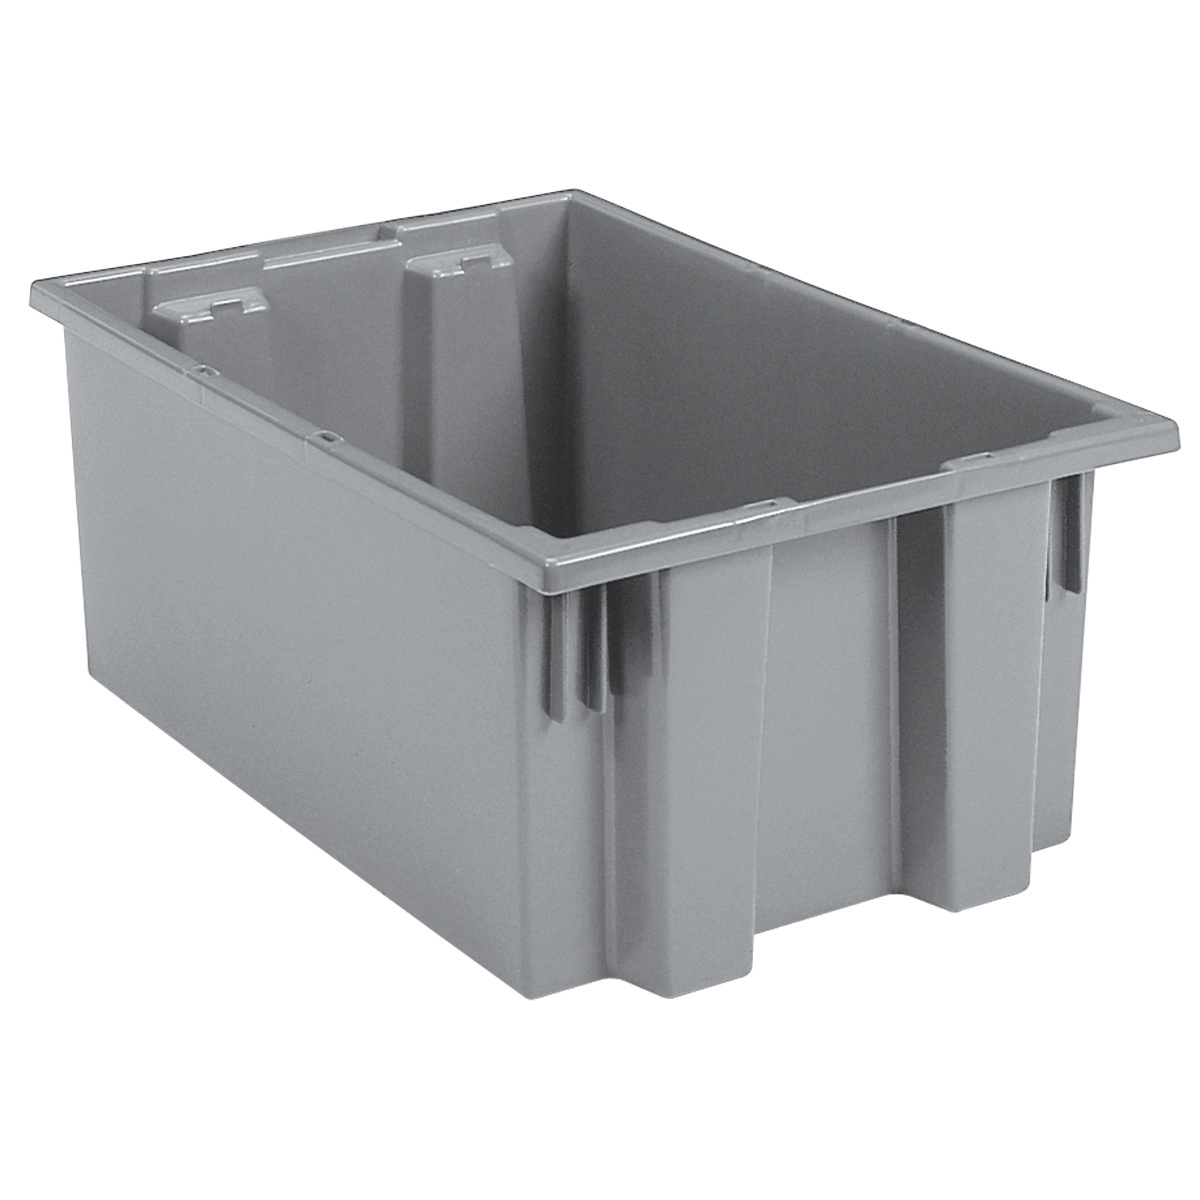 Nest & Stack Tote 19-1/2 x 15-1/2 x 10, Gray (35190GREY).  This item sold in carton quantities of 6.